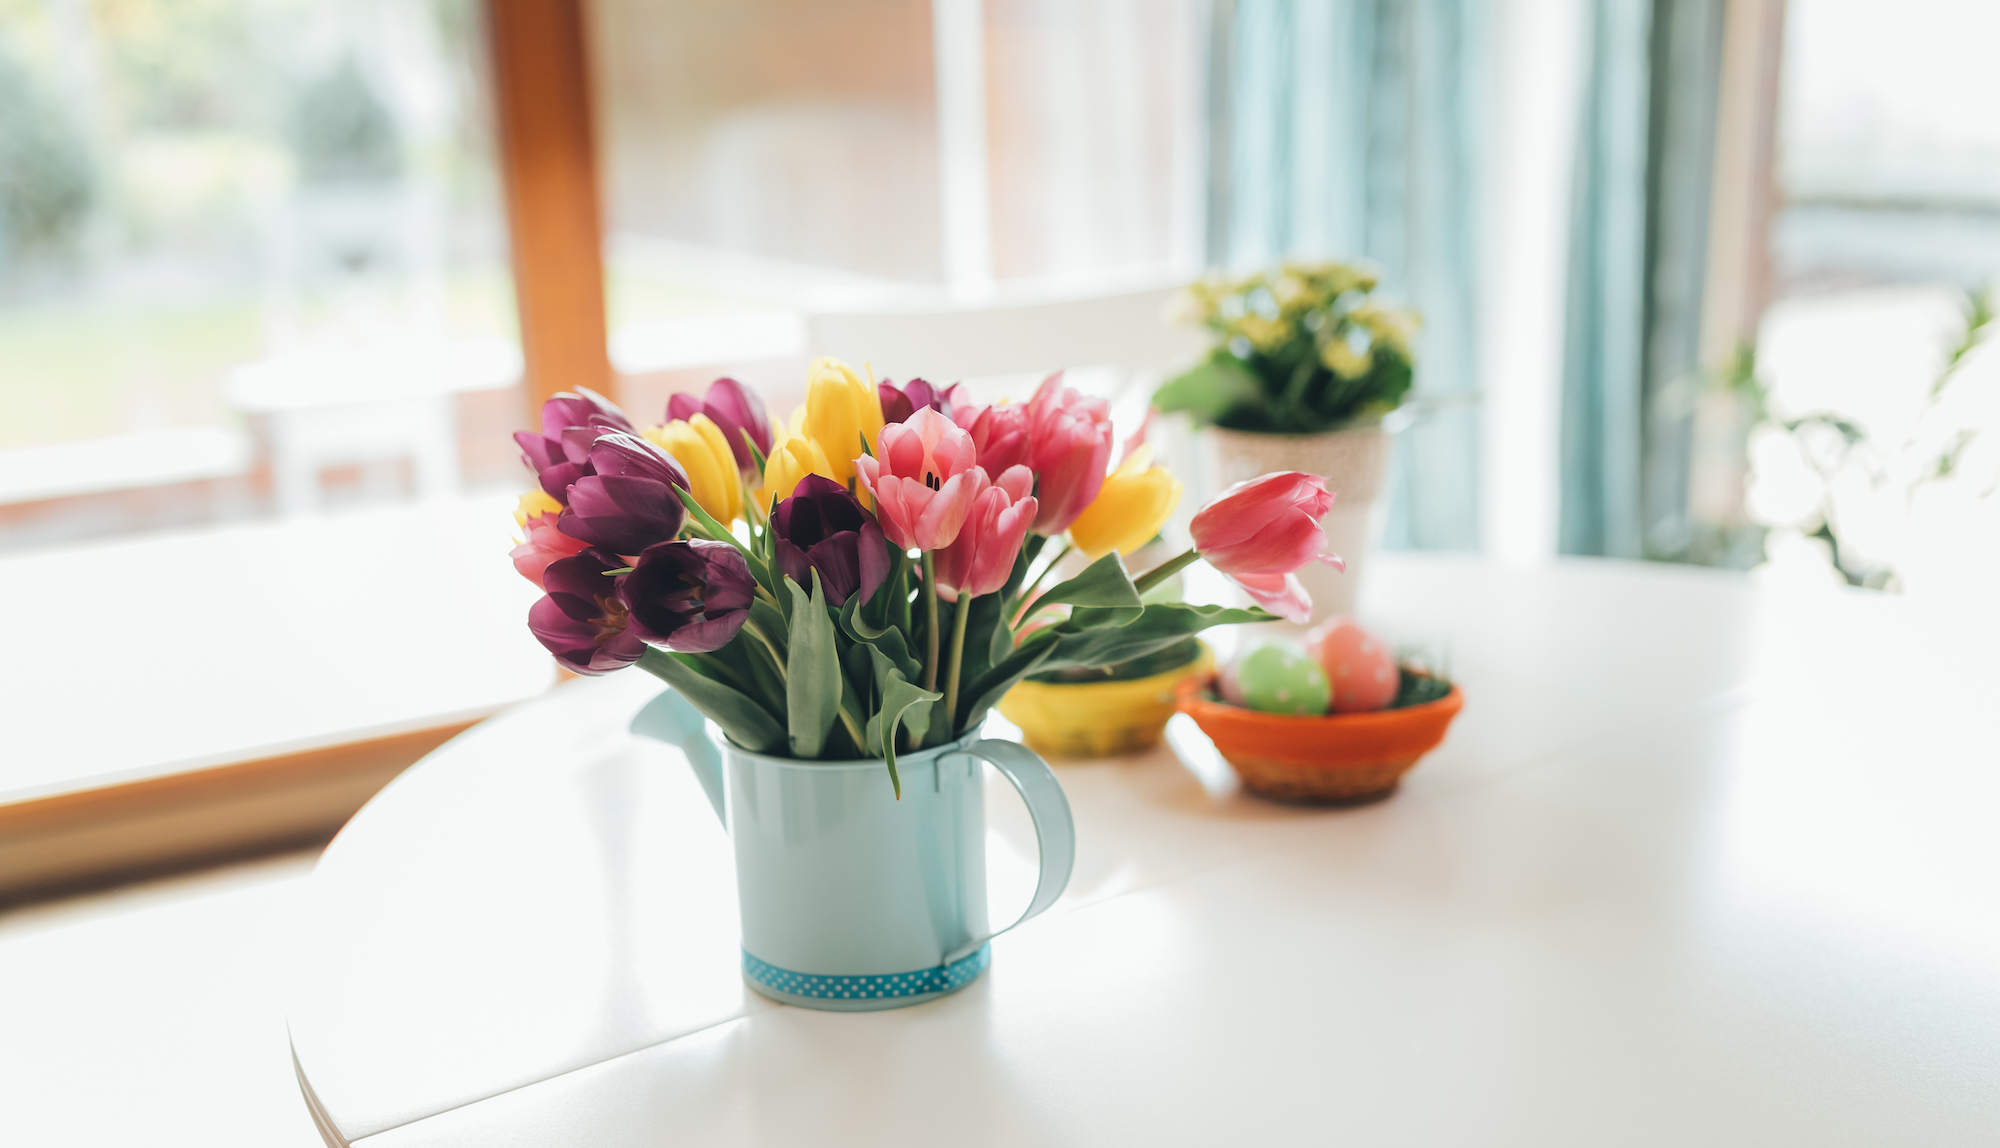 Spring Home Tips to Brighten Your Space